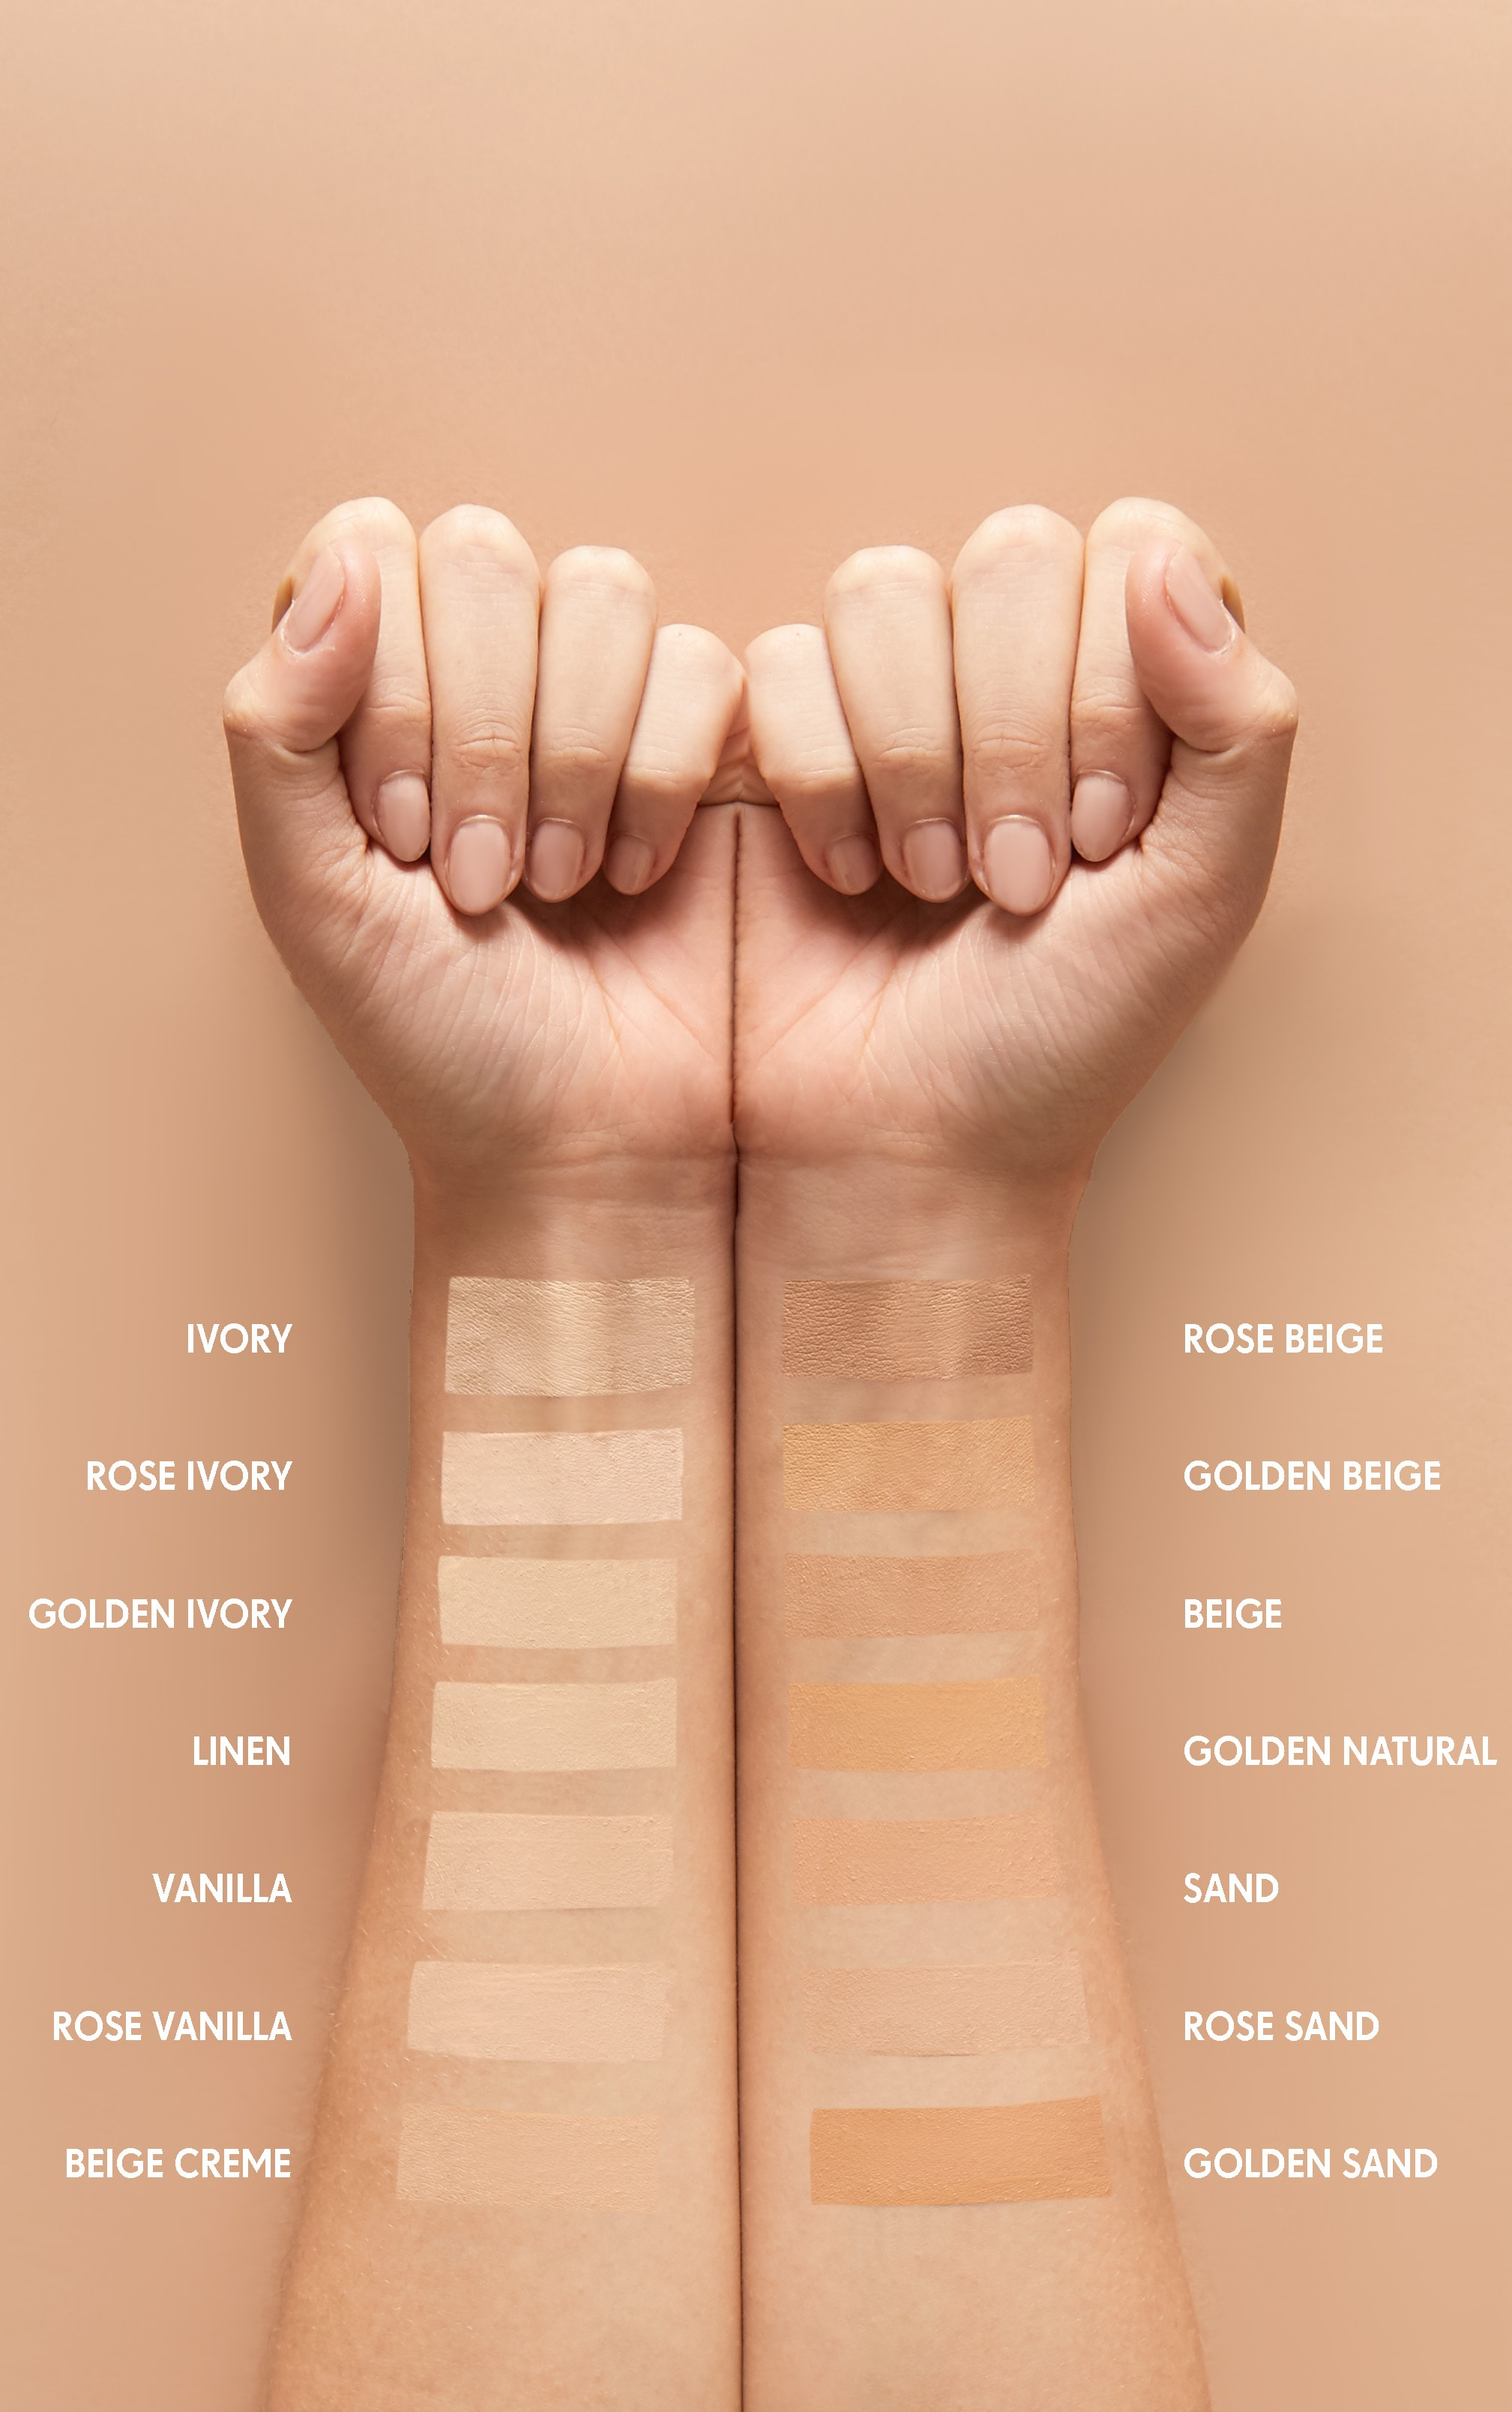 L'Oréal Paris True Match Foundation 1.C Rose Ivory 3